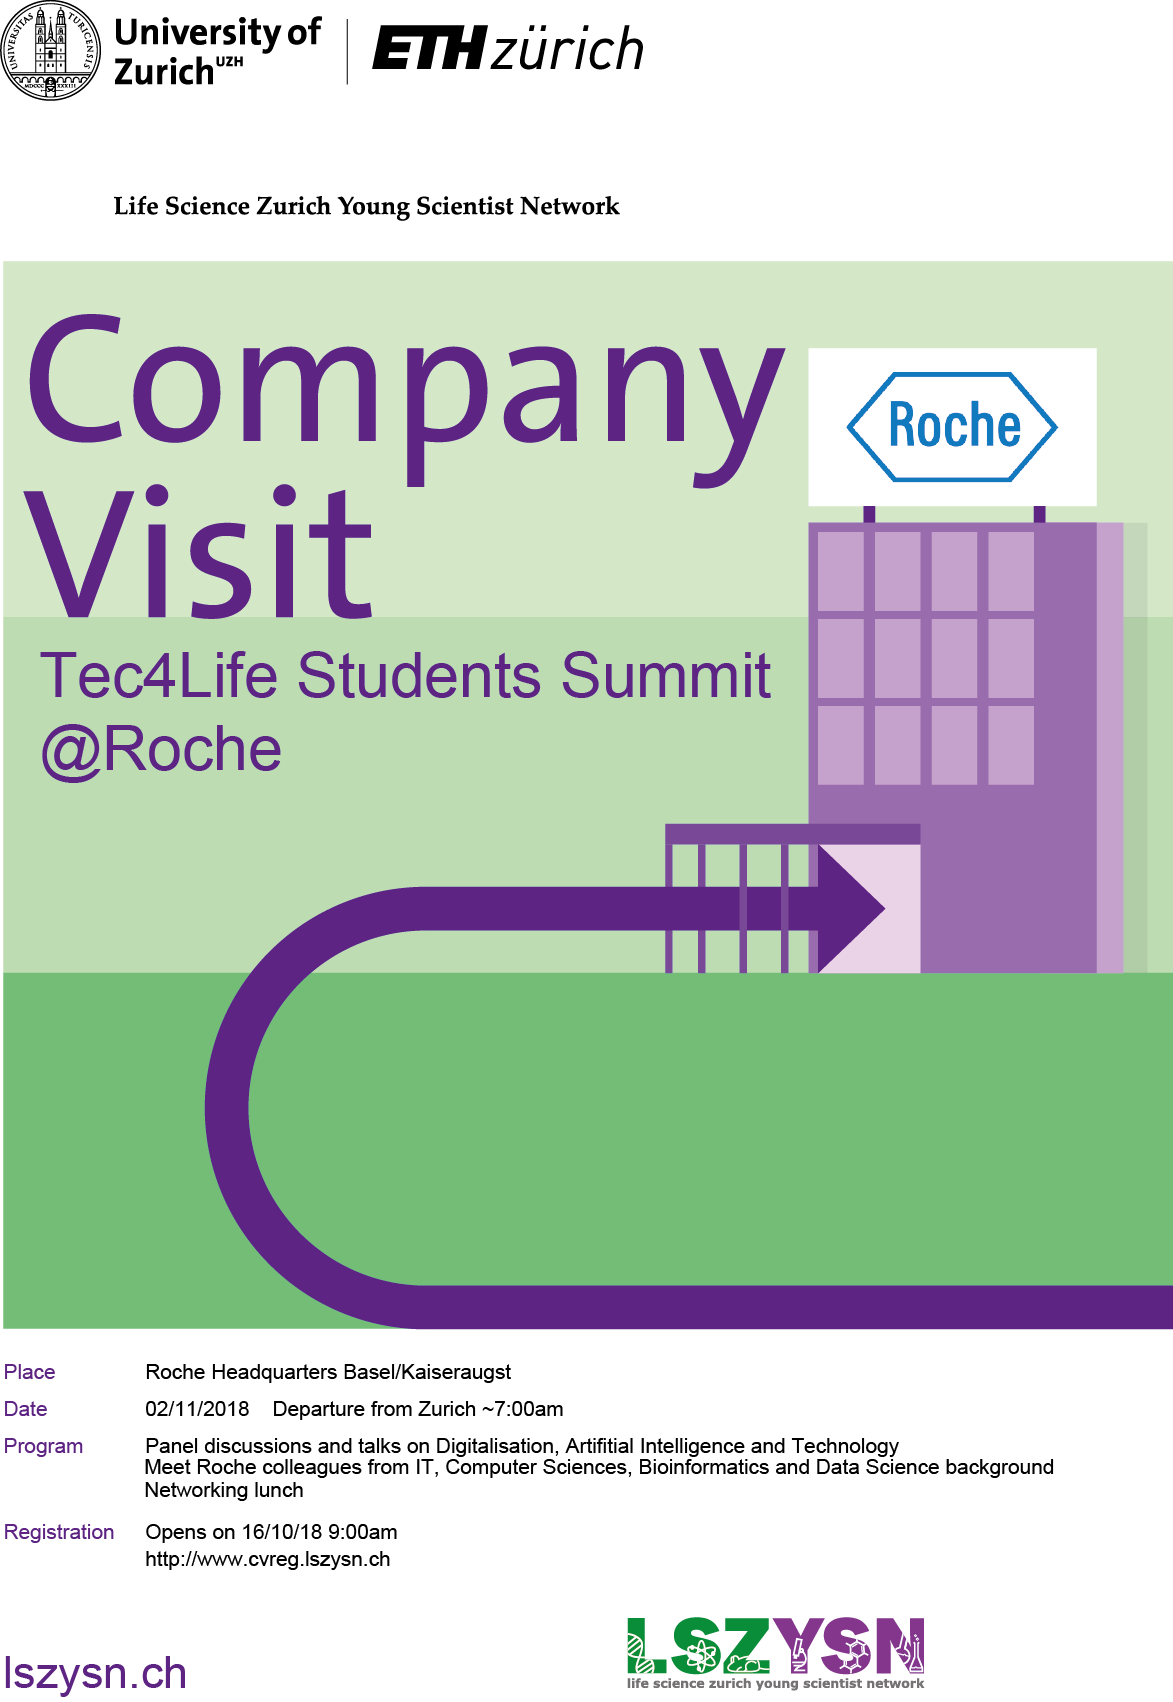 Tec4Life Students Summit, Roche